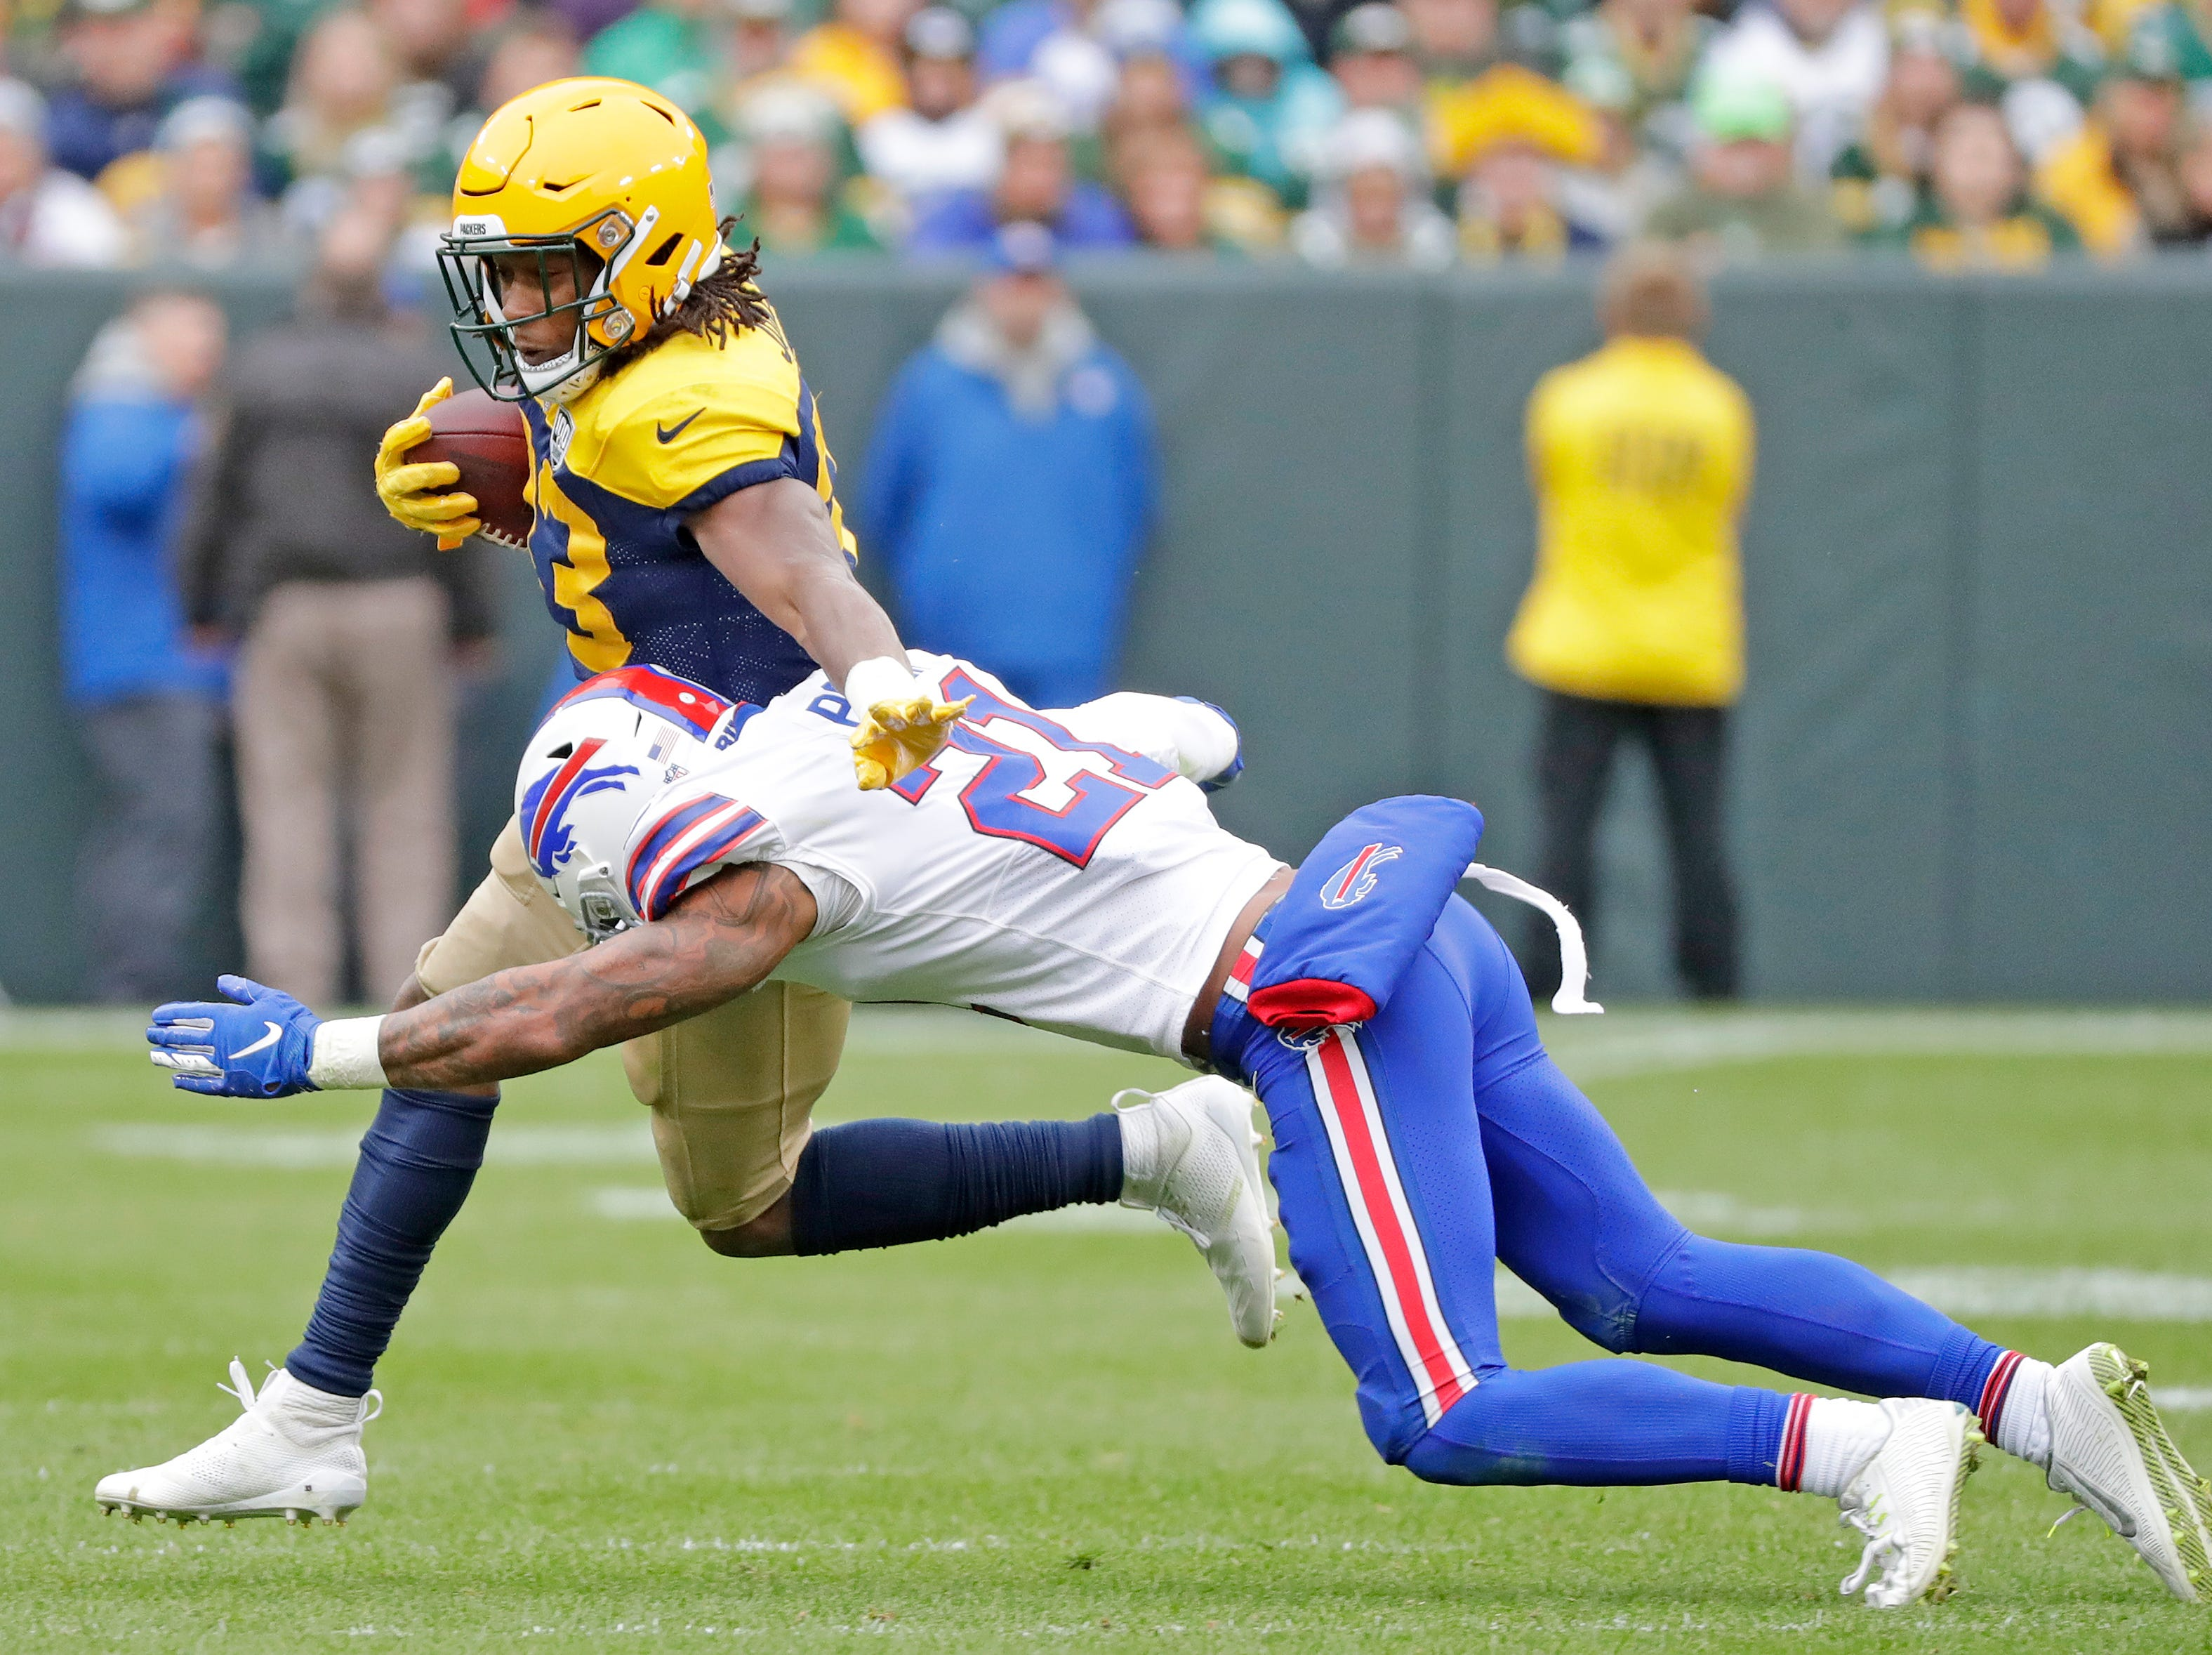 Green Bay Packers running back Aaron Jones (33) rushes against the Buffalo Bills at Lambeau Field on Sunday, September 30, 2018 in Green Bay, Wis.Adam Wesley/USA TODAY NETWORK-Wisconsin